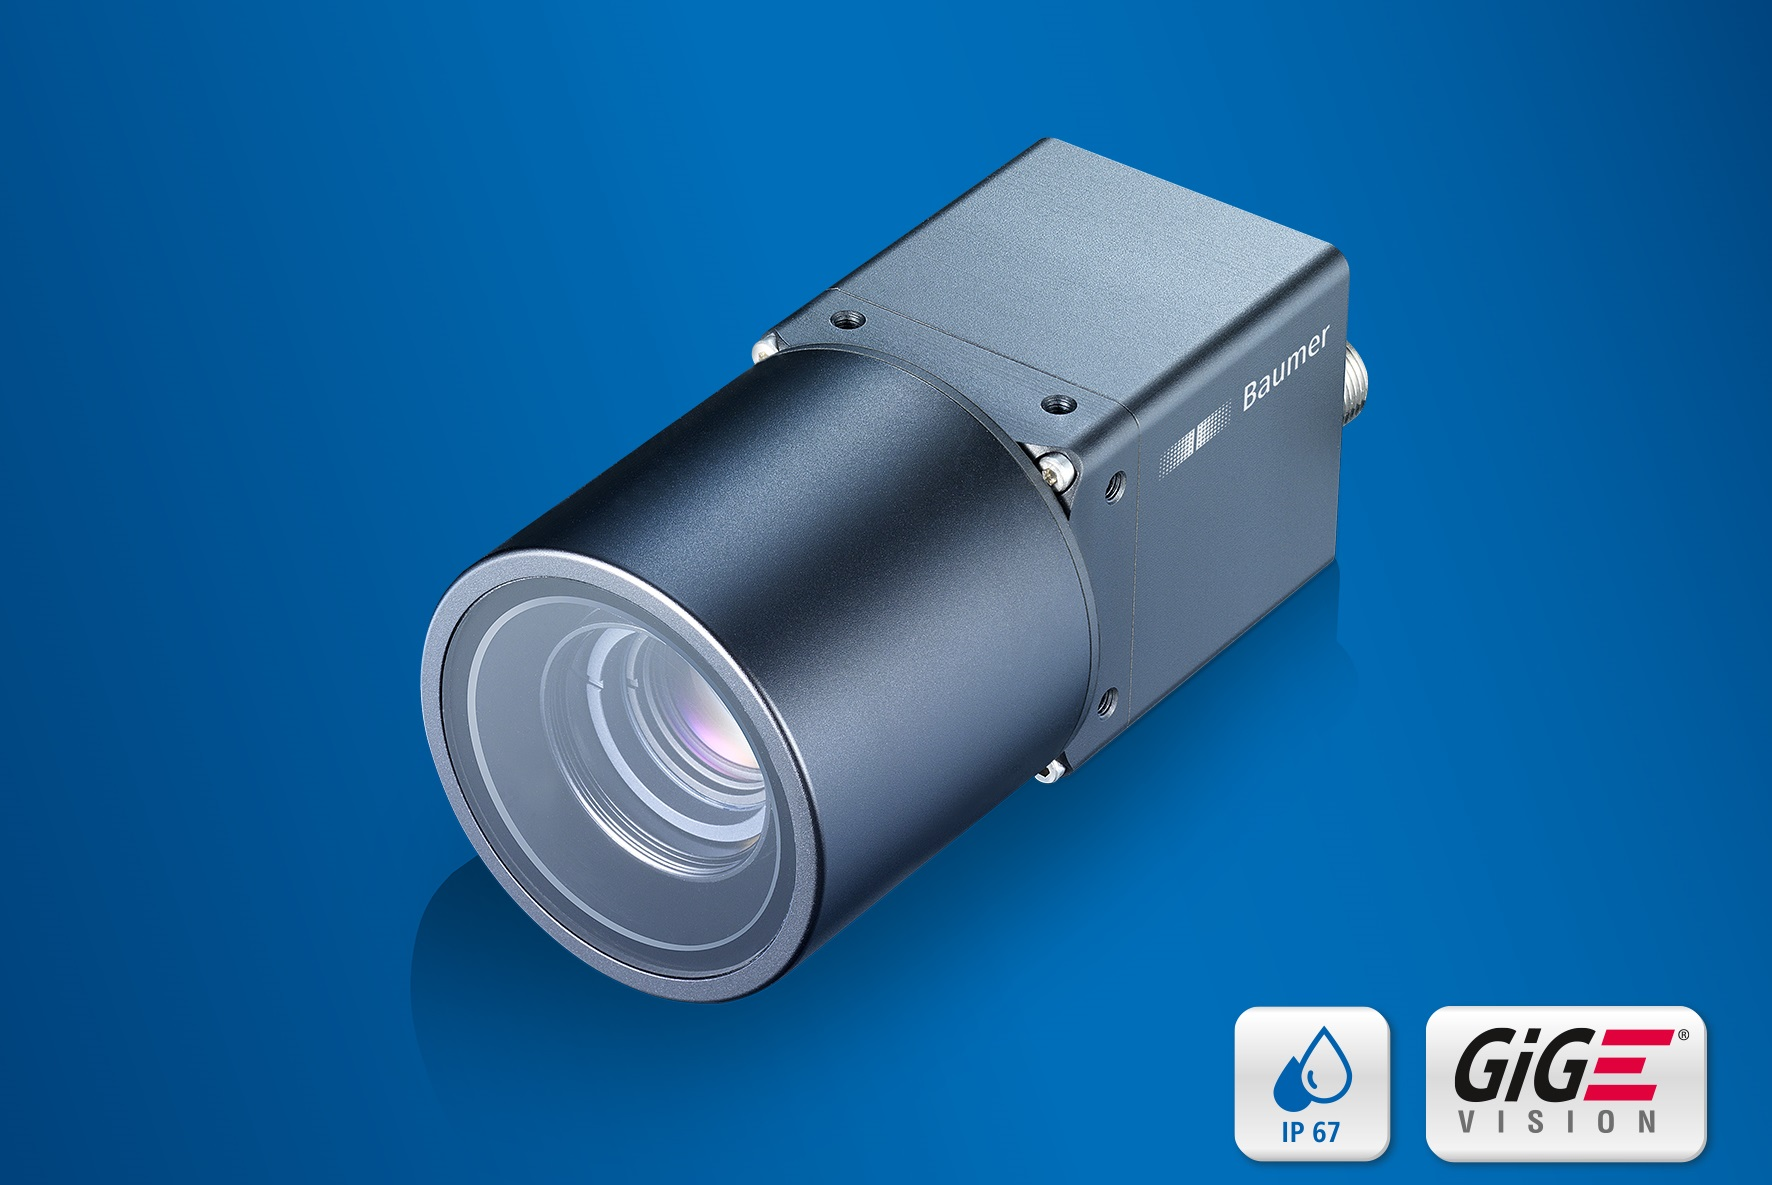 The new IP 65/67 rated CX cameras endure dust, water jets and extreme temperatures from 70 °C down to -40 °C.